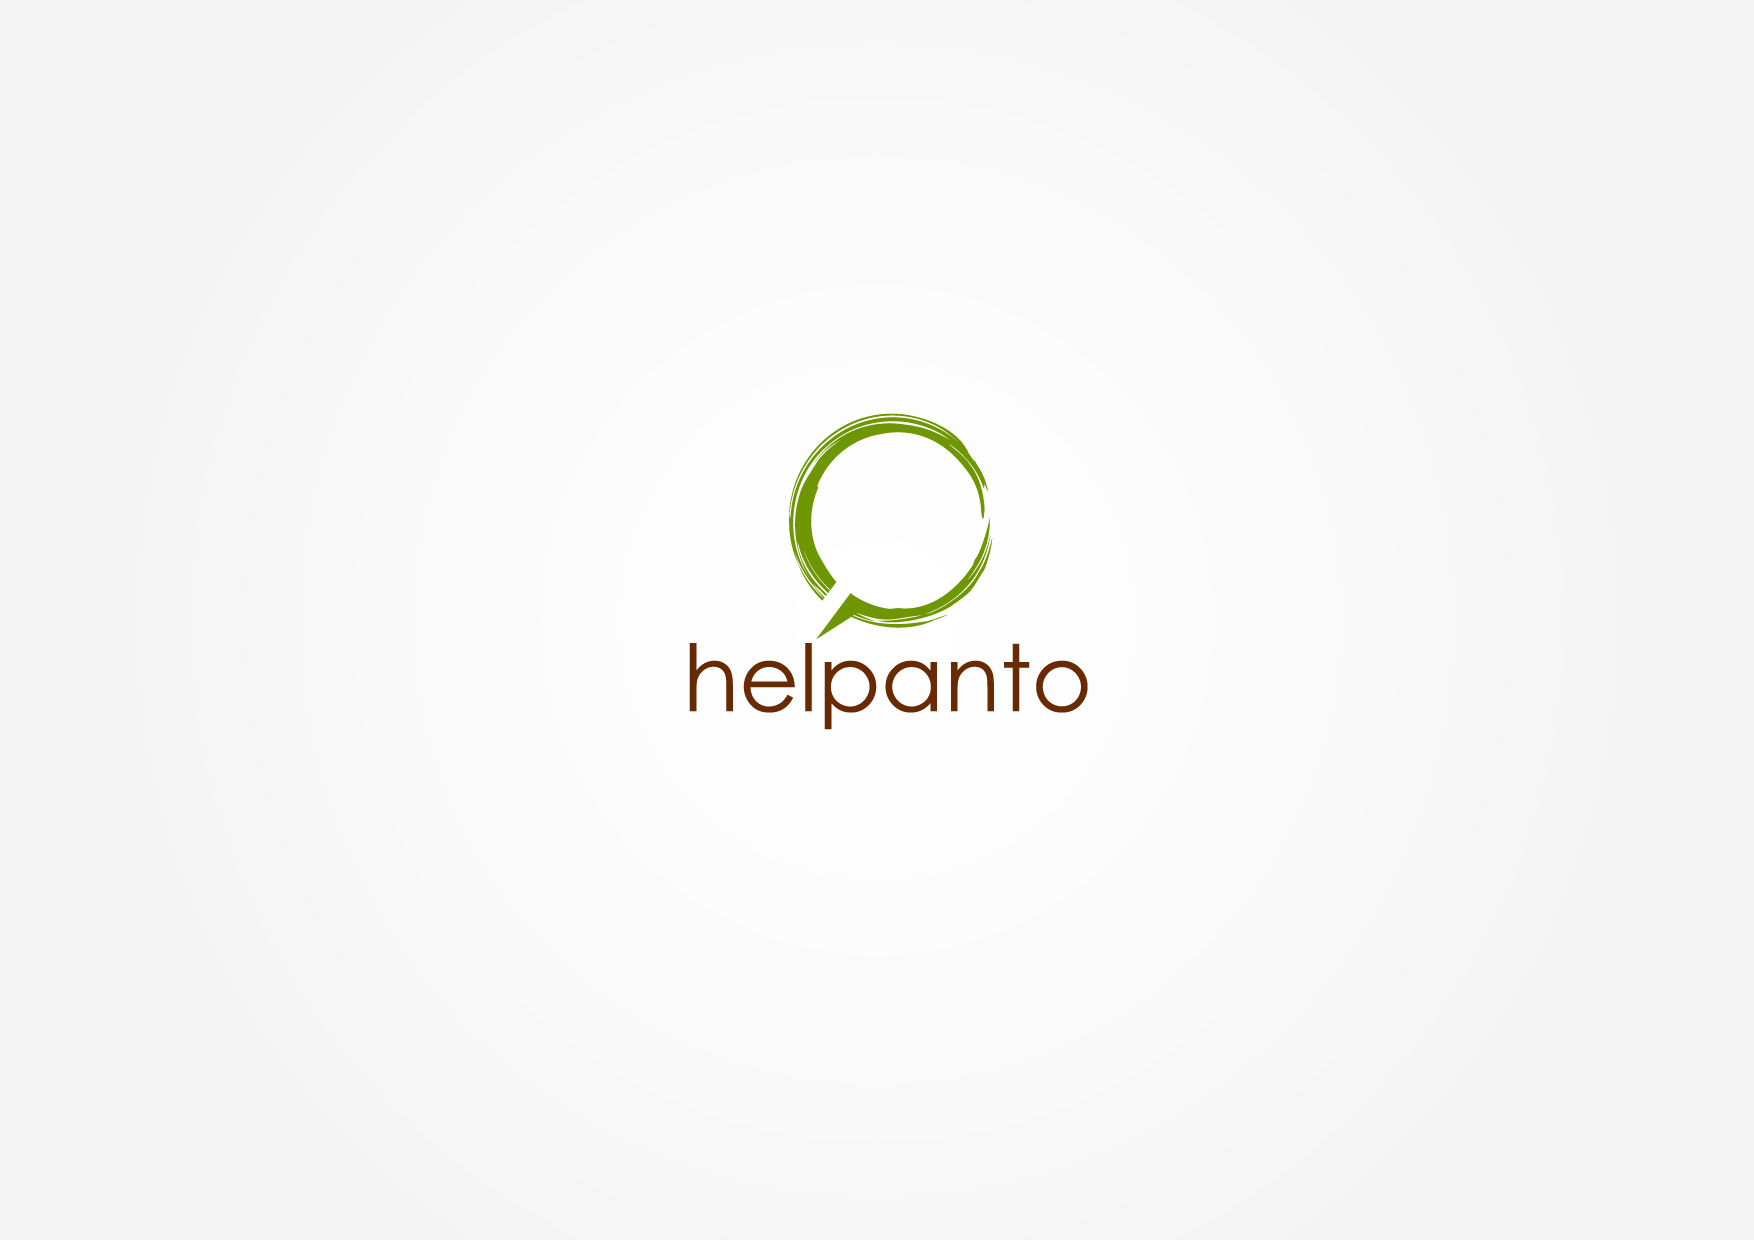 Logo Design by Osi Indra - Entry No. 32 in the Logo Design Contest Artistic Logo Design for helpanto.